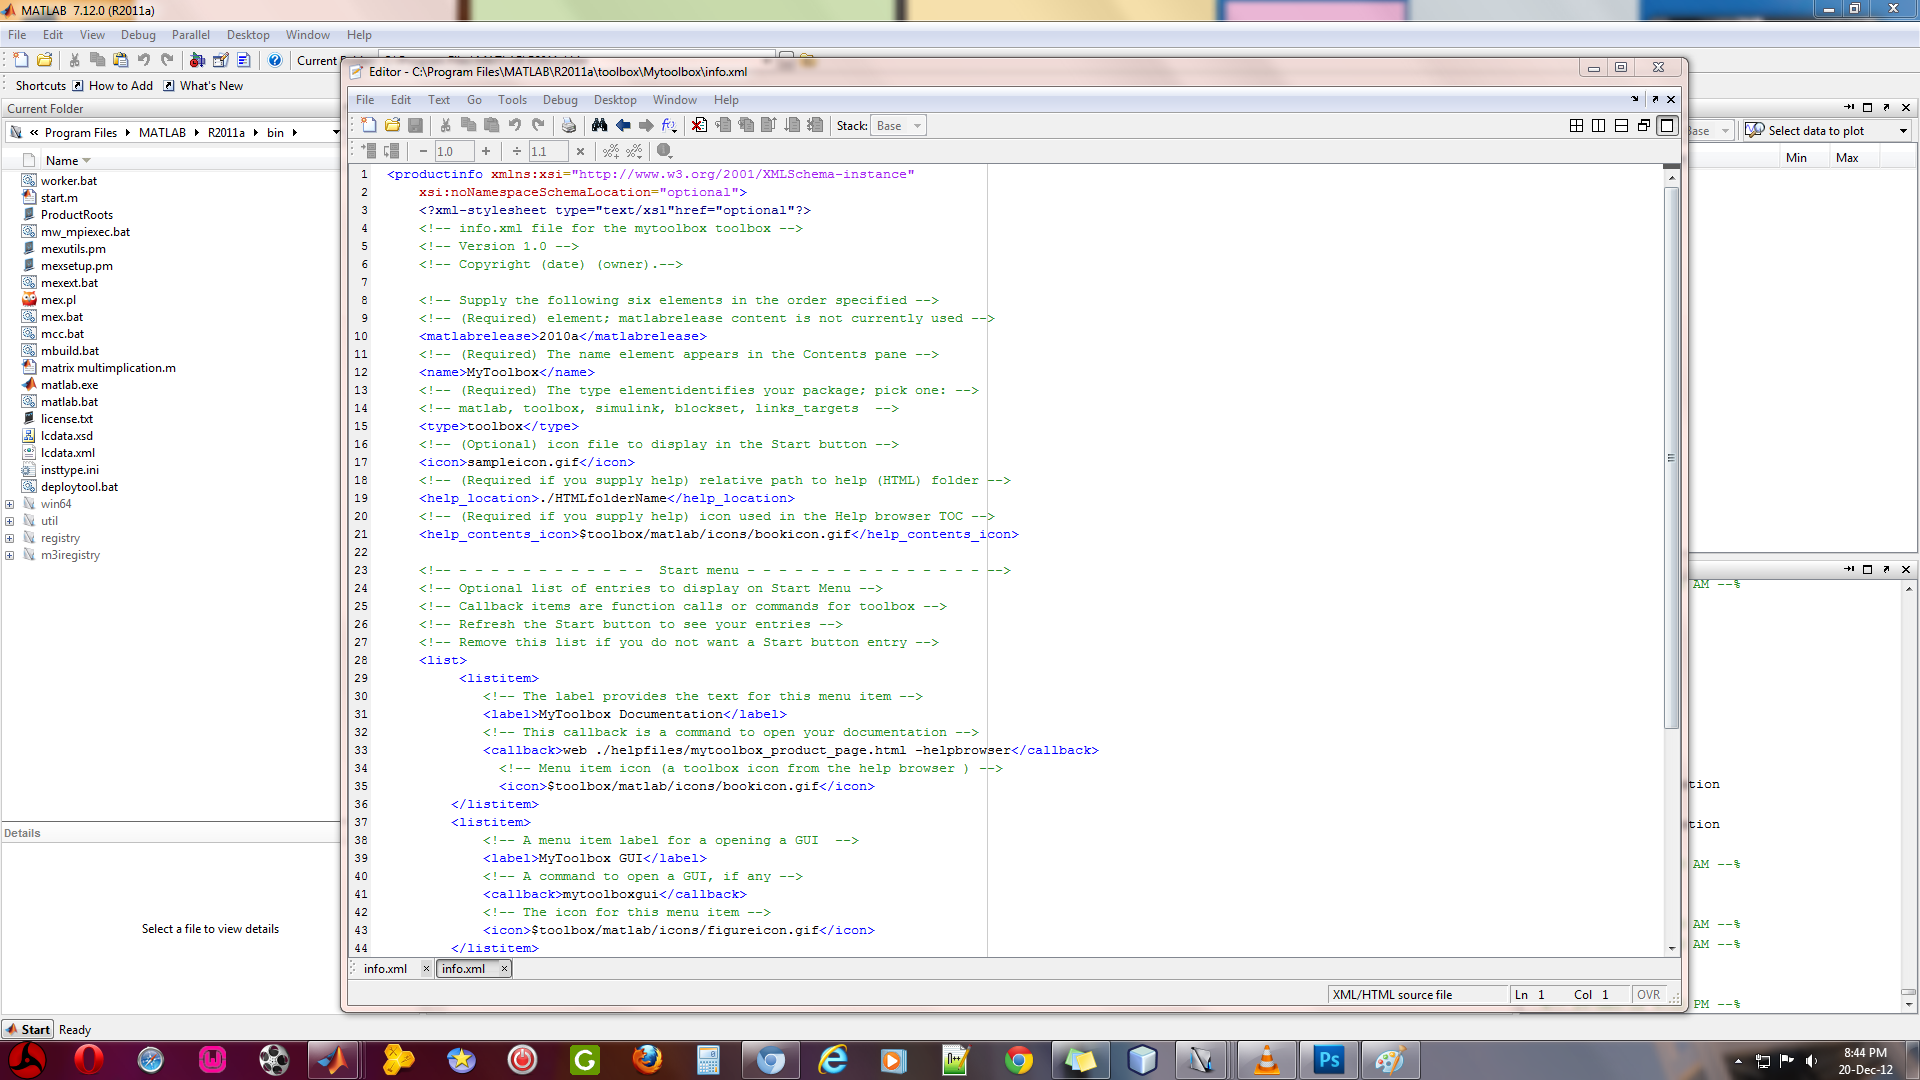 A snippet of info.xml file- Matlab Toolbox